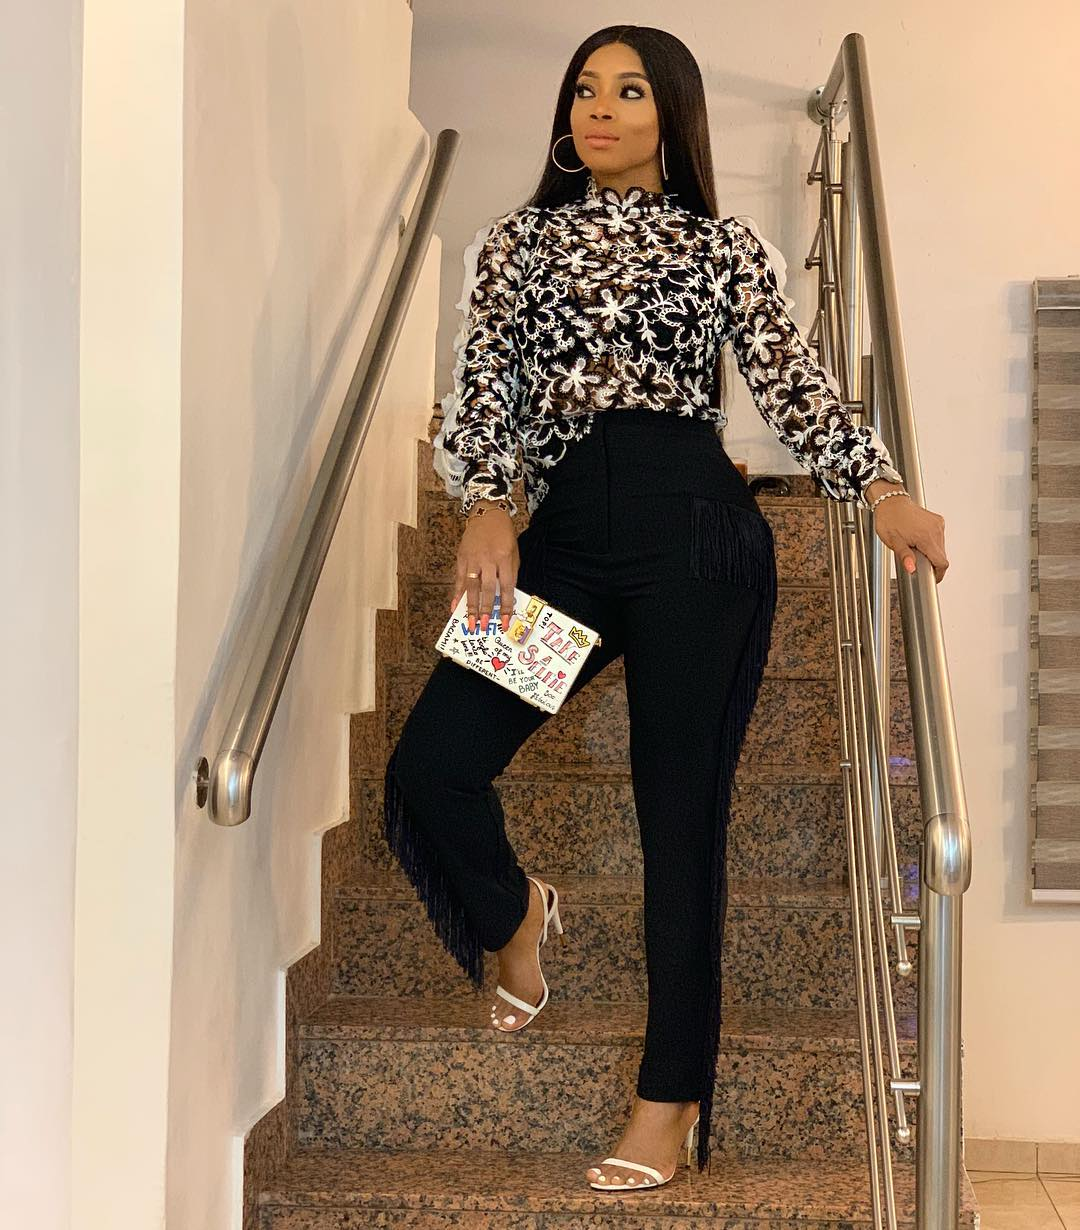 TOKE MAKINWA IS A MEGA BABE IN SELF PORTRAIT